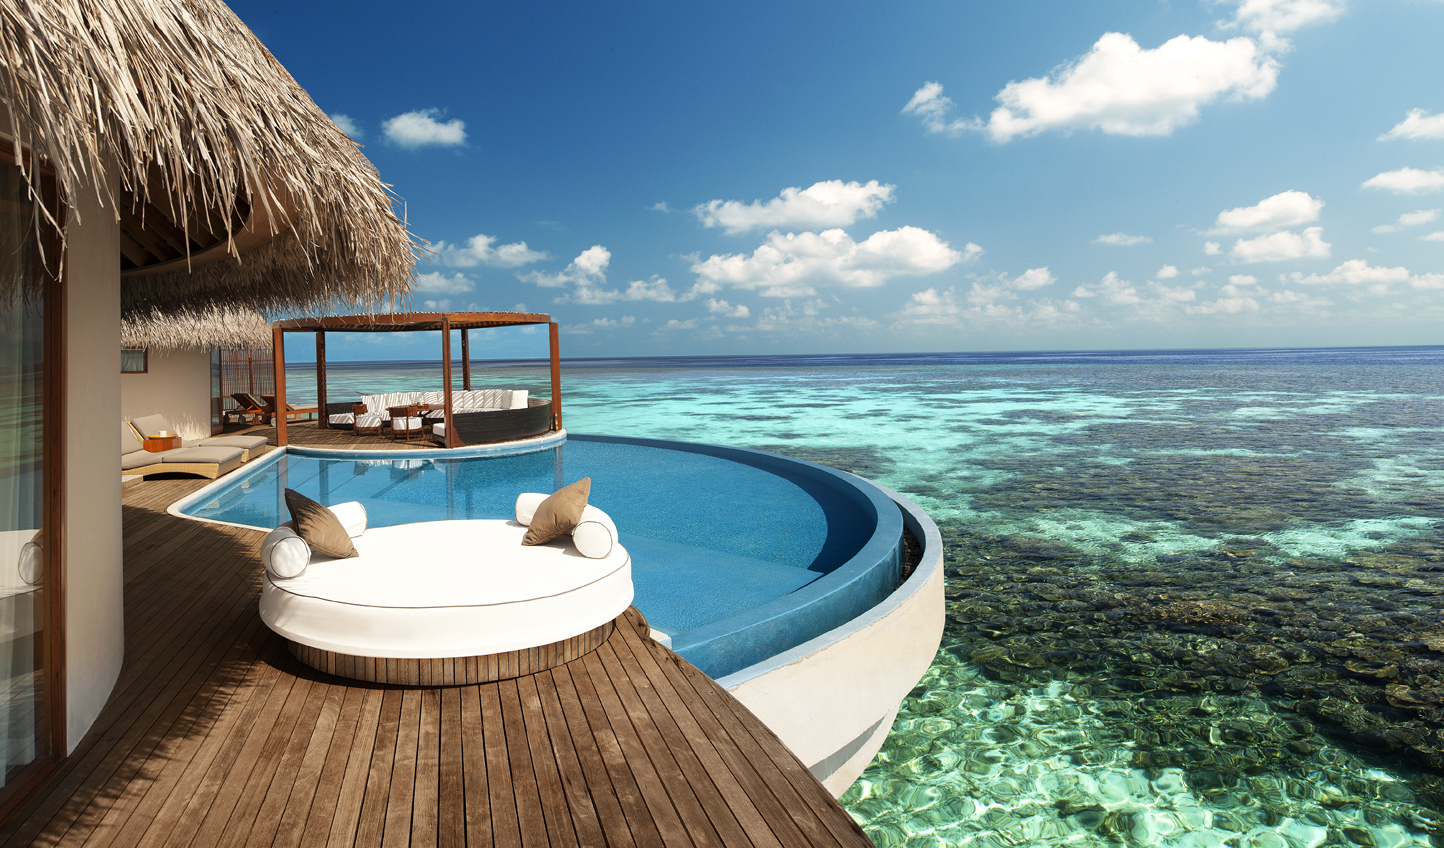 Look out over tropical reefs from your infinity pool